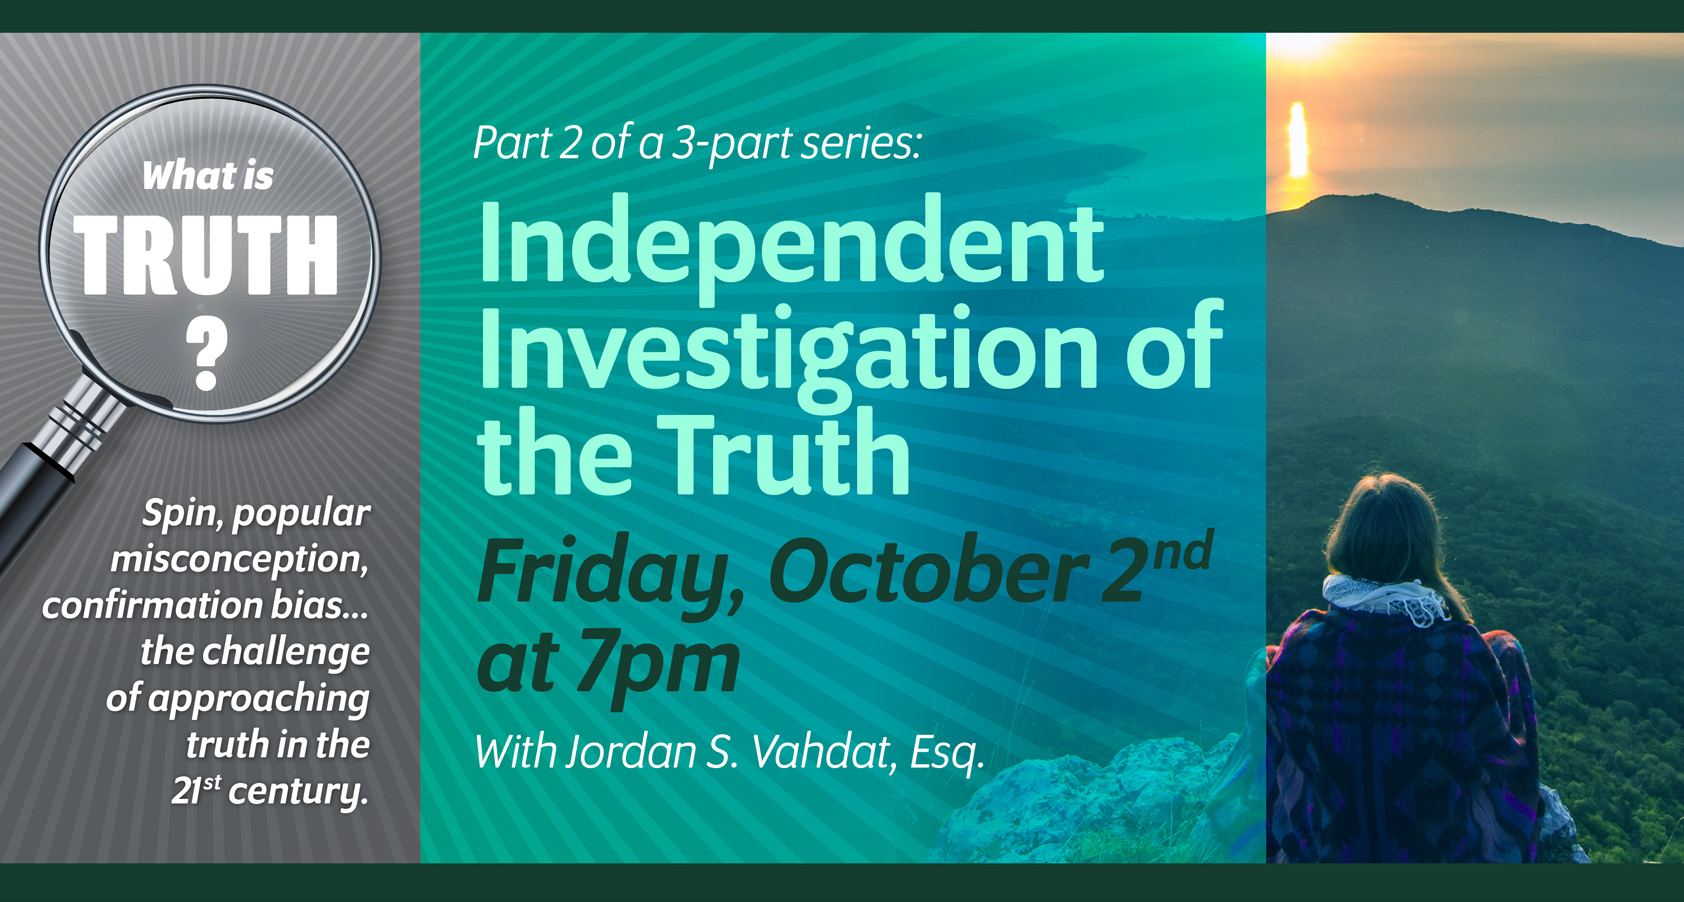 Independent Investigation of the Truth, October 2 at 7pm